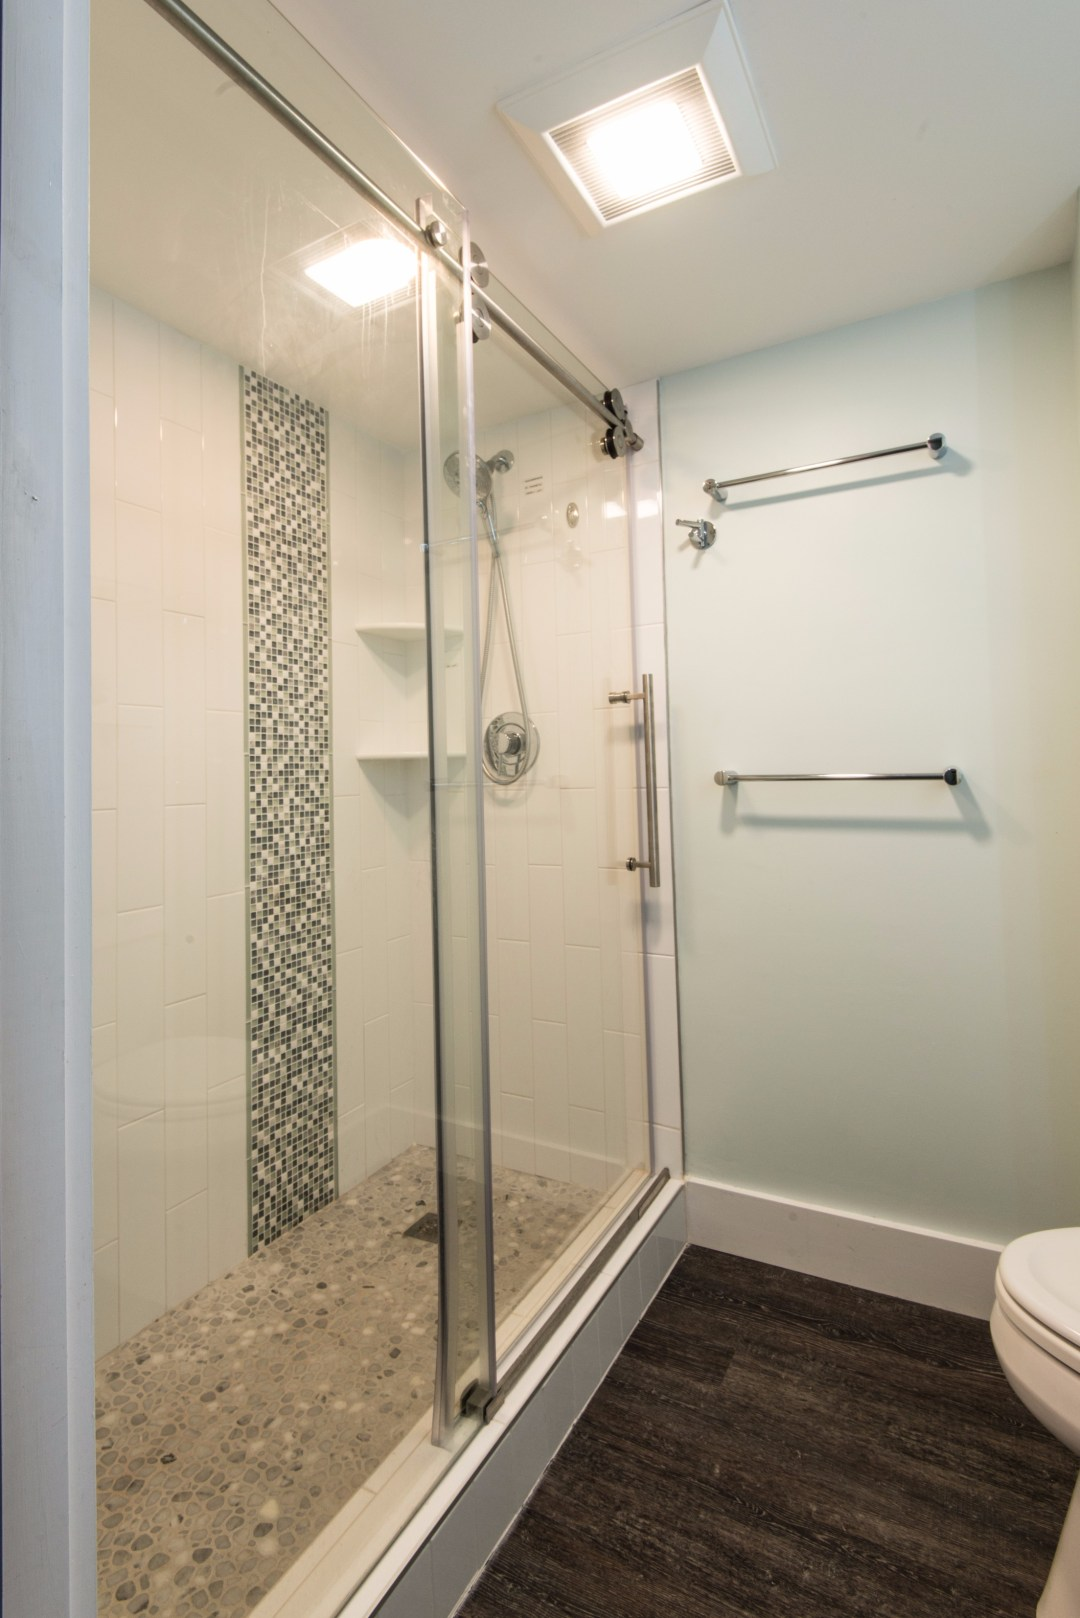 Bathroom Remodel in Sea Colony, Bethany Beach DE with Coretec Georgetown Oak Flooring and White Vertical Subway Wall Tiles